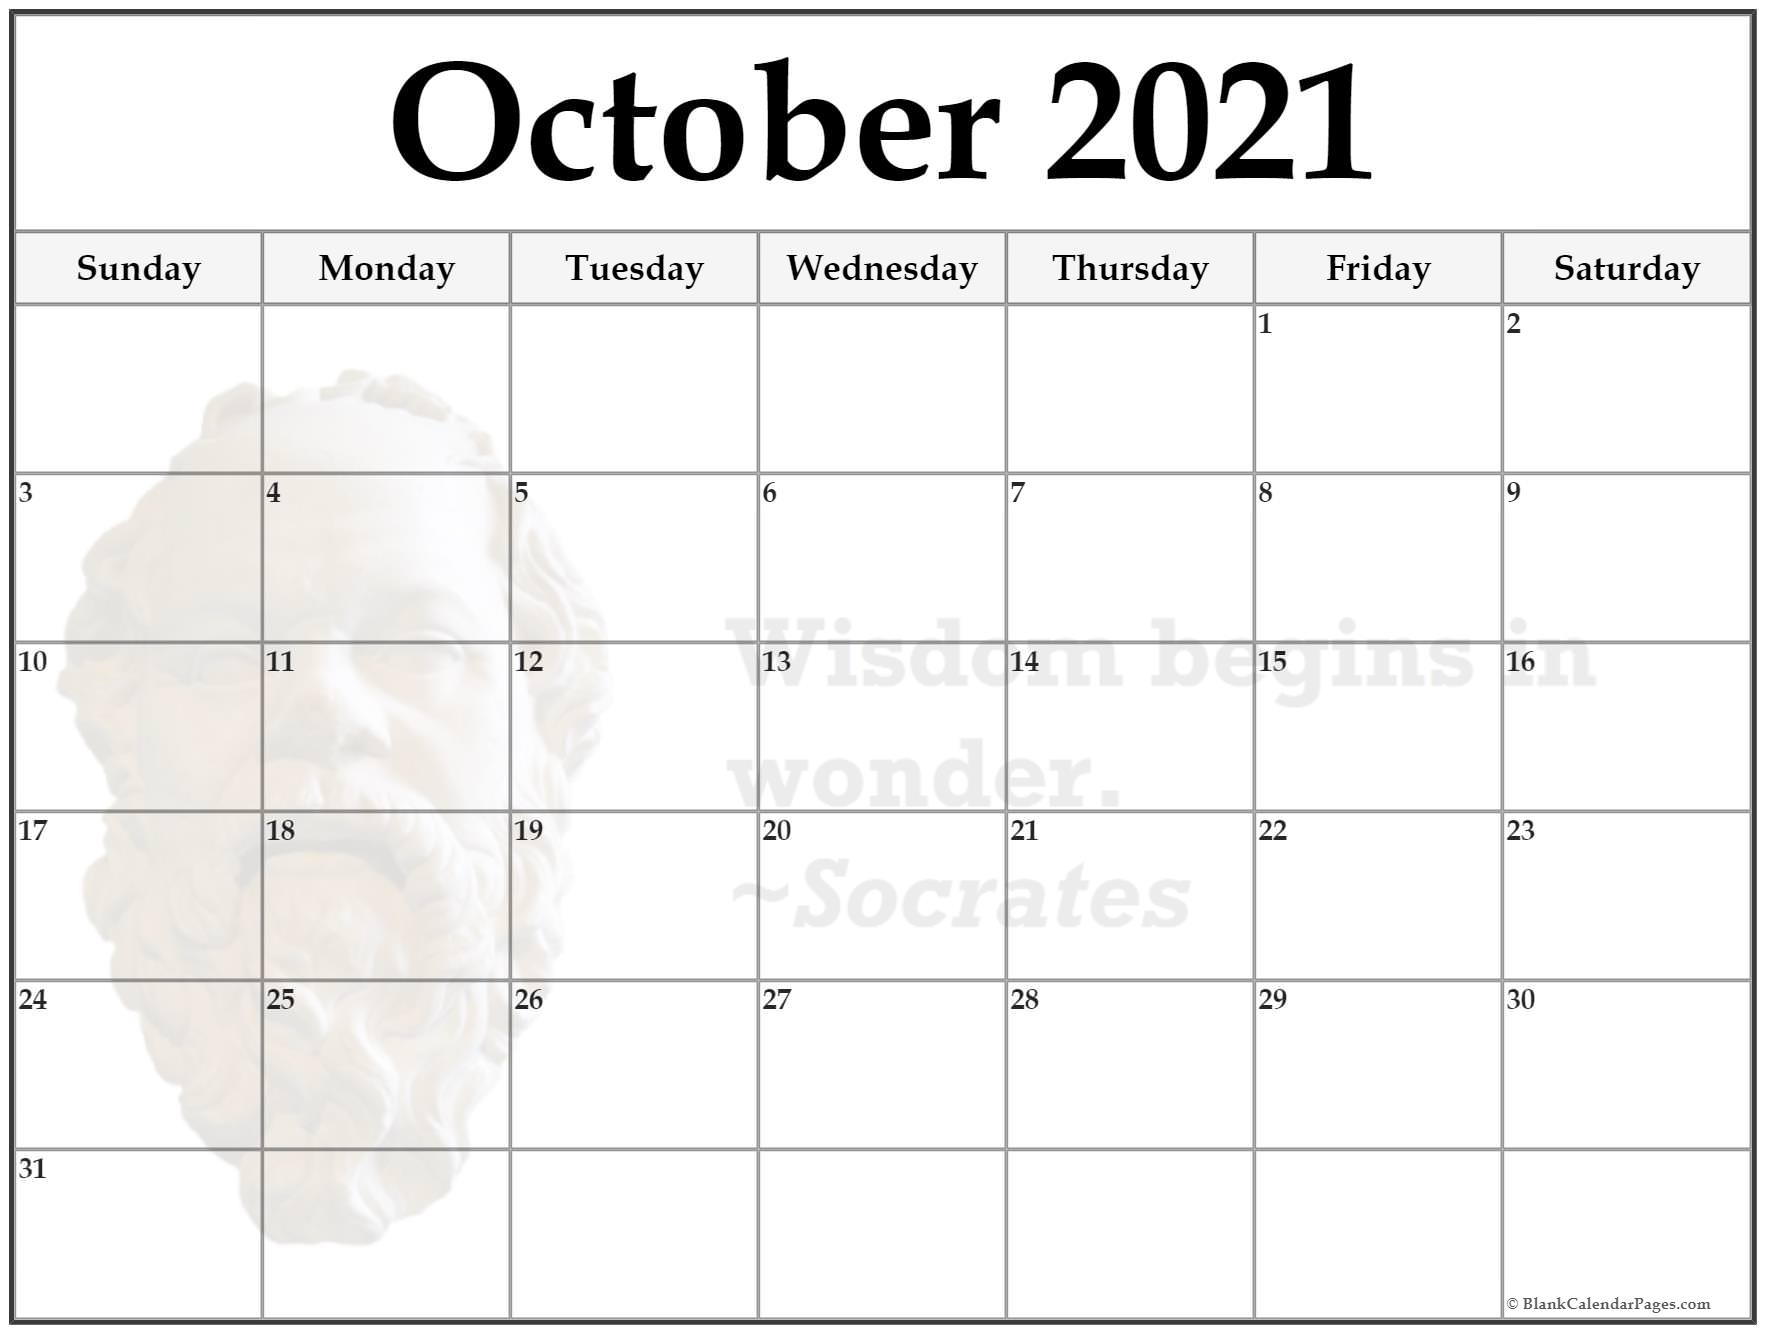 October 2021 monthly quote calendar template. Wisdom begins in wonder. ~Socrates